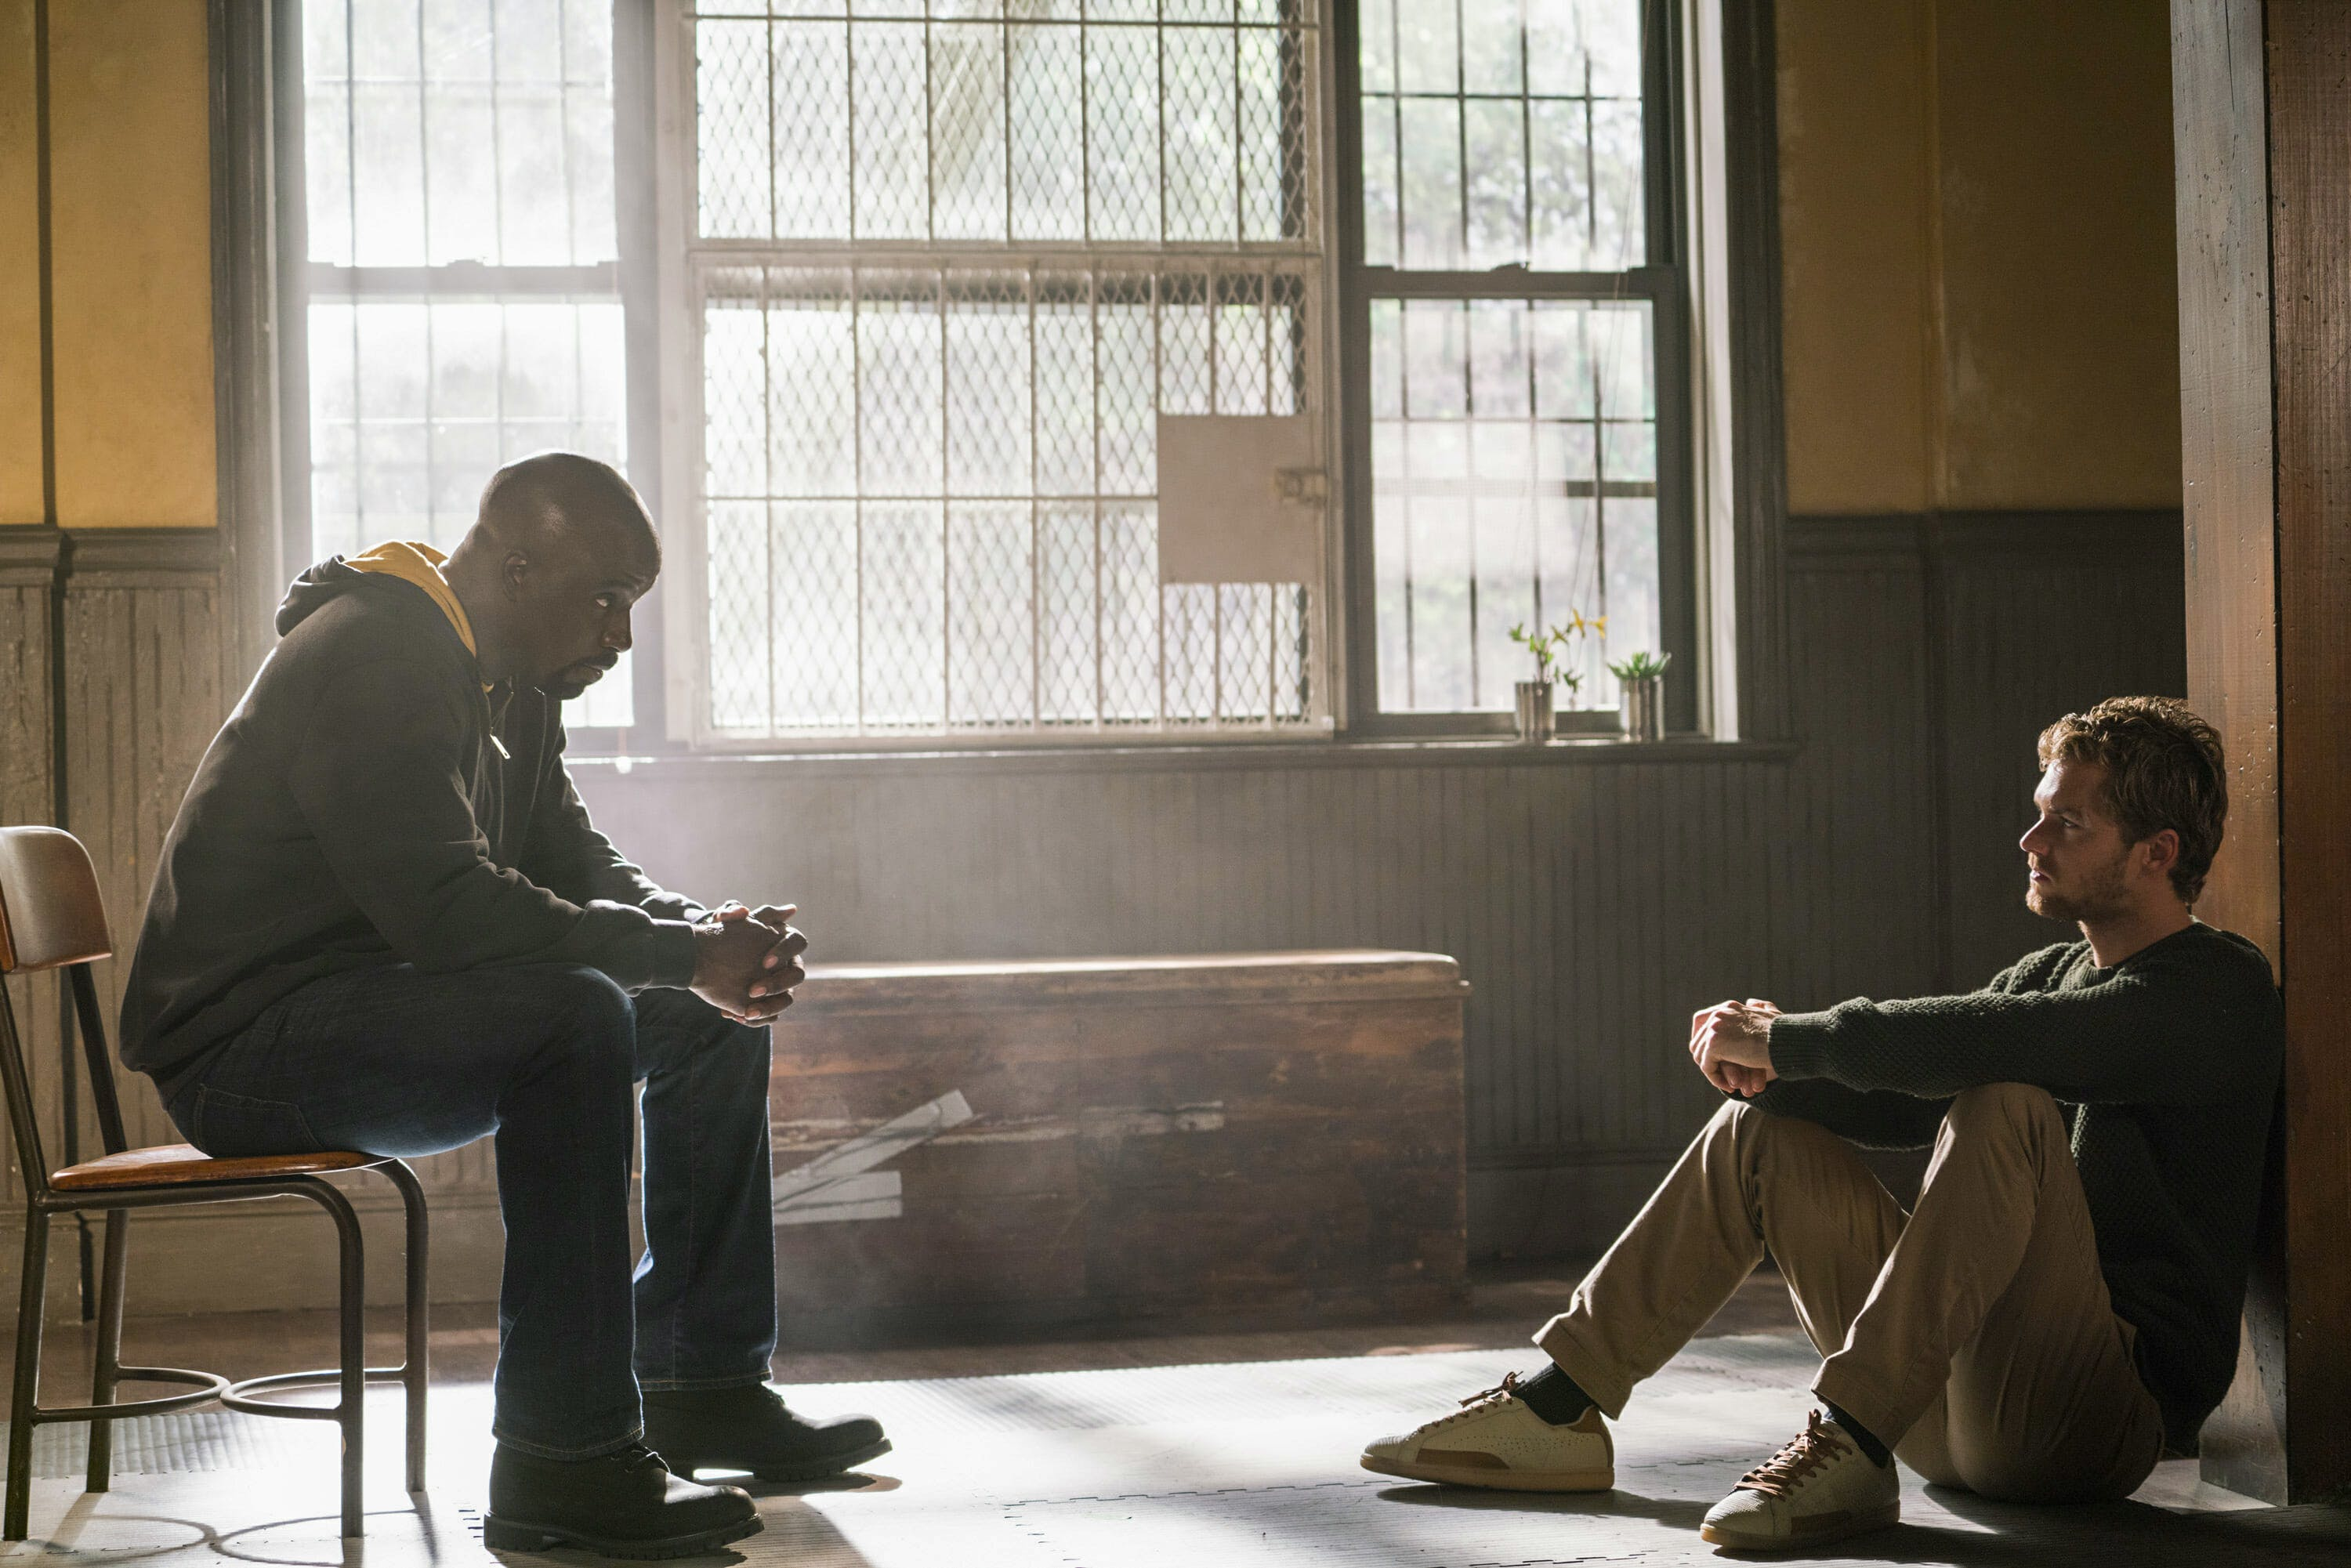 iron fist season 2 will likely feature luke cage and danny, shown here in the defenders